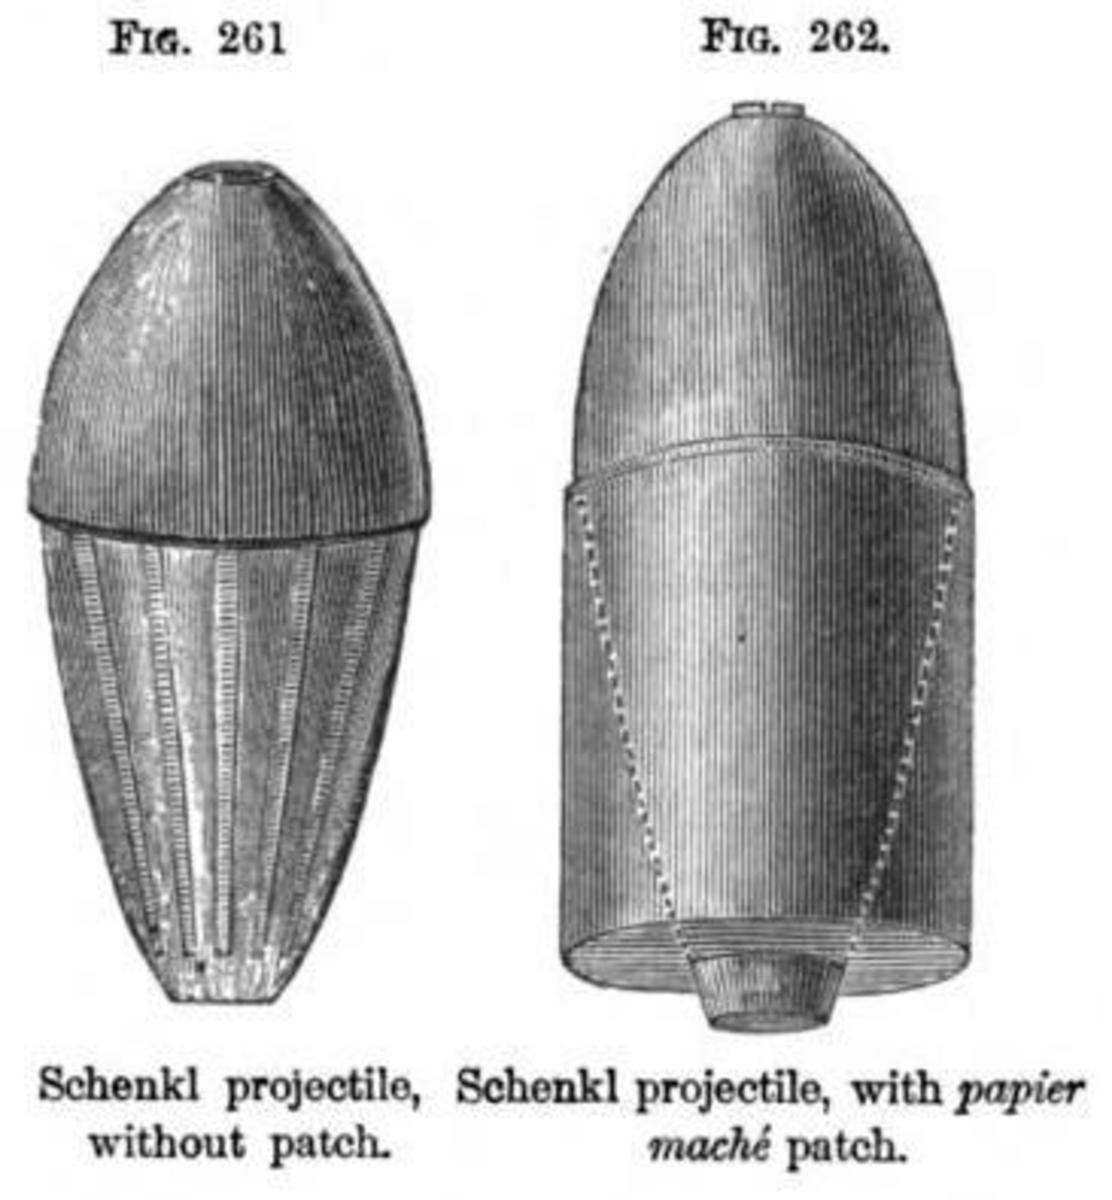 Ffrom A Treatise on Ordnance and Armor, by Alexander Lyman Holley, published 1865 by Trübner & Company, this illustrates the Schenkl projectile, a streamlined shell used by Union forces in the Civil War.